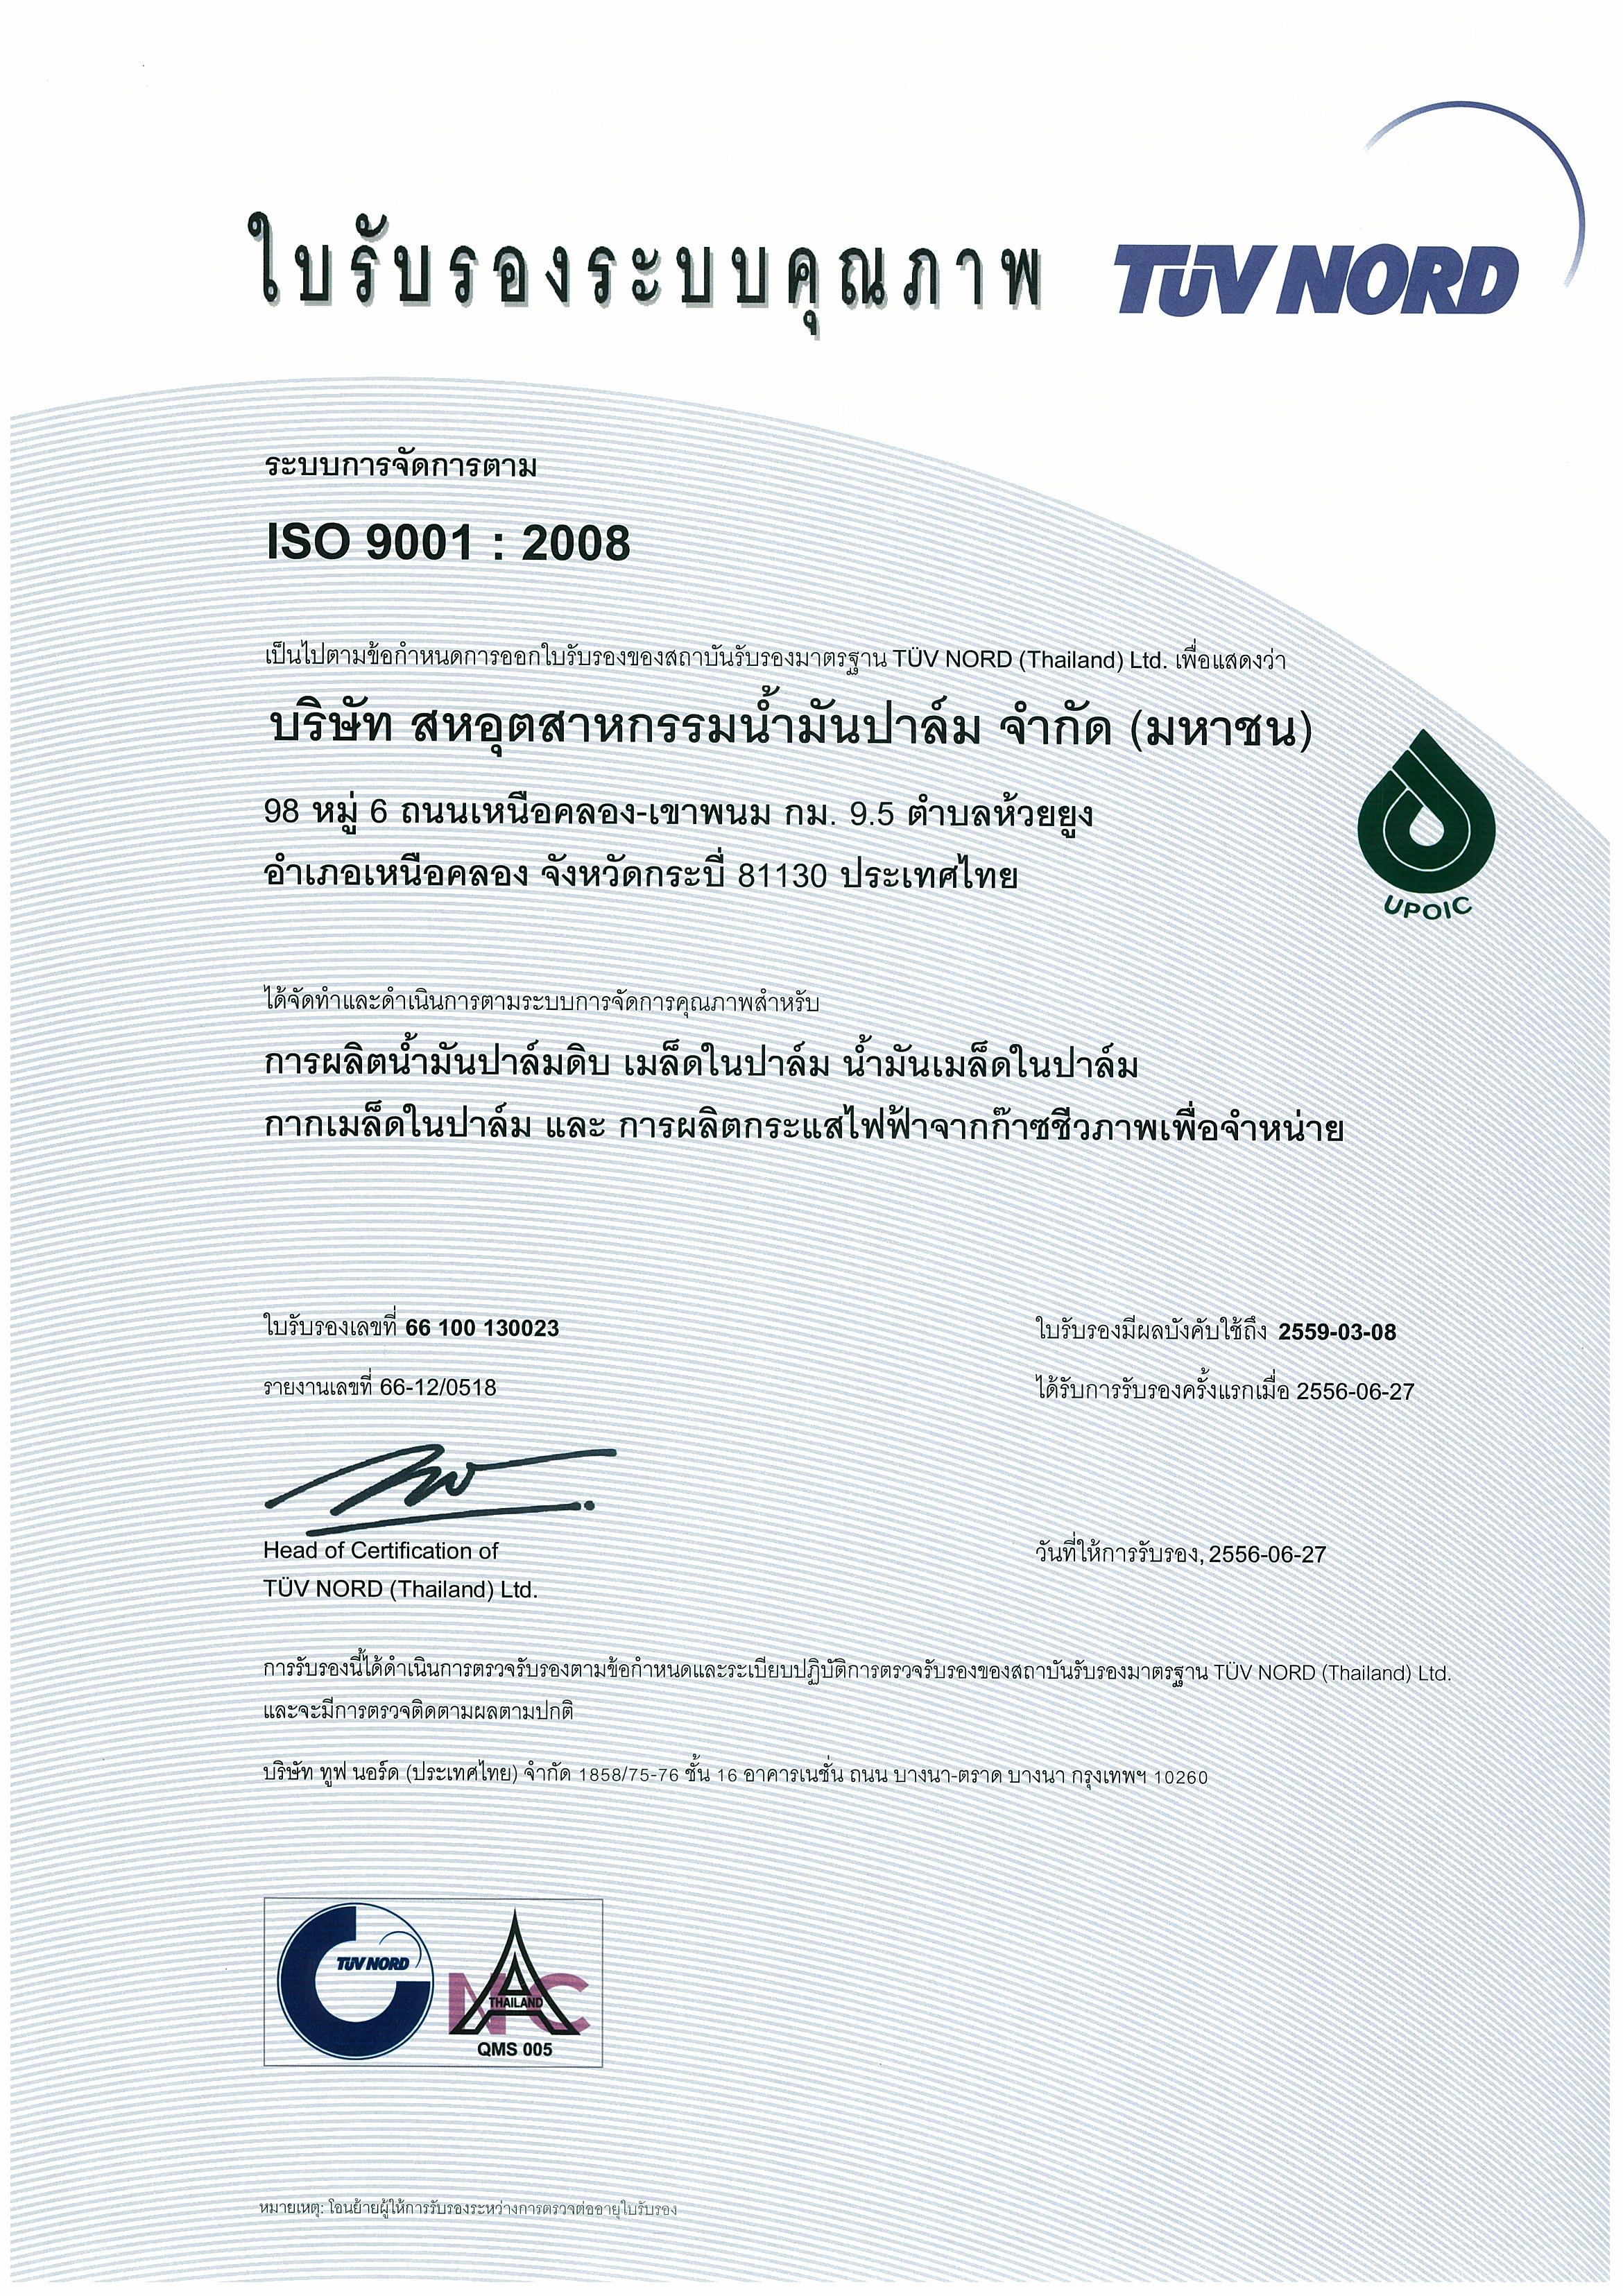 certificate บร tuv บรอง nac nord palm industry limited oil united th